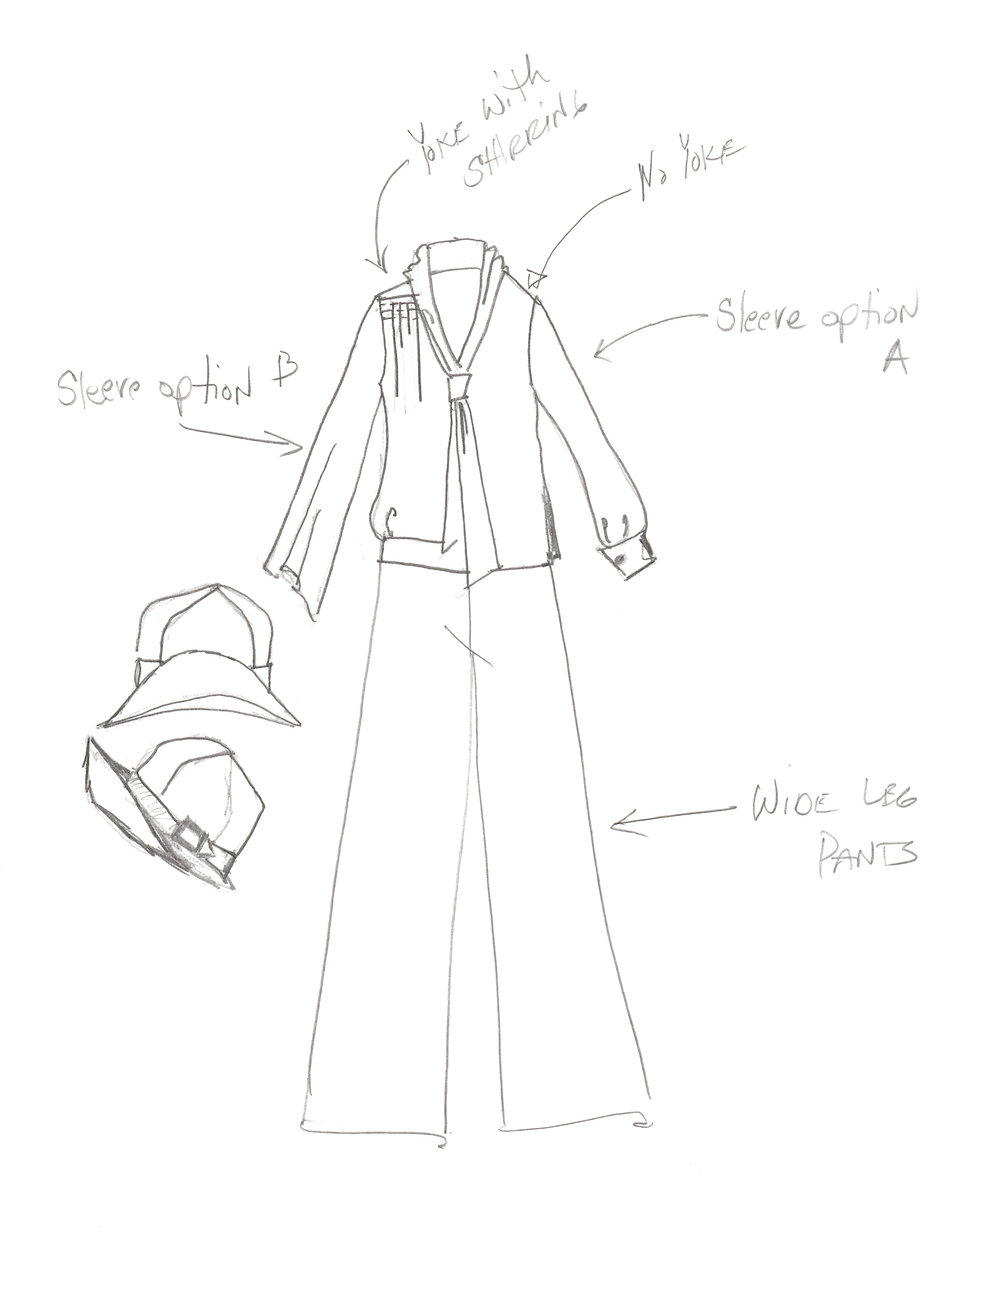 Here is a study of one of Fryne's outfits, were I've seen a basic shape, but did variations on the details (side to side).